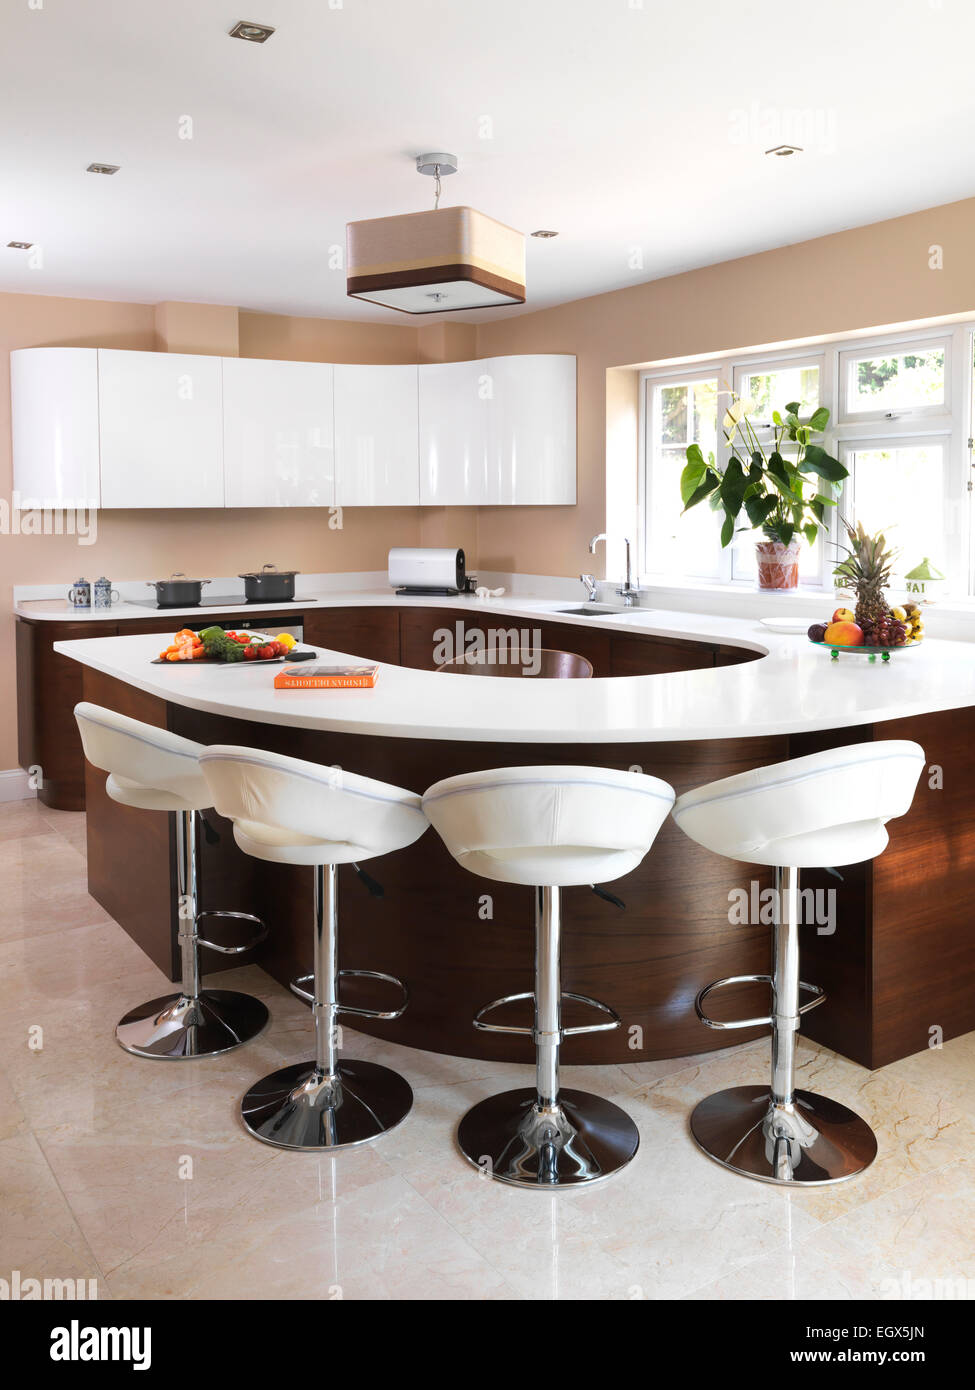 Kitchen Breakfast Bar Bar Stools At Breakfast Bar In Modern Kitchen Uk Home Stock Photo